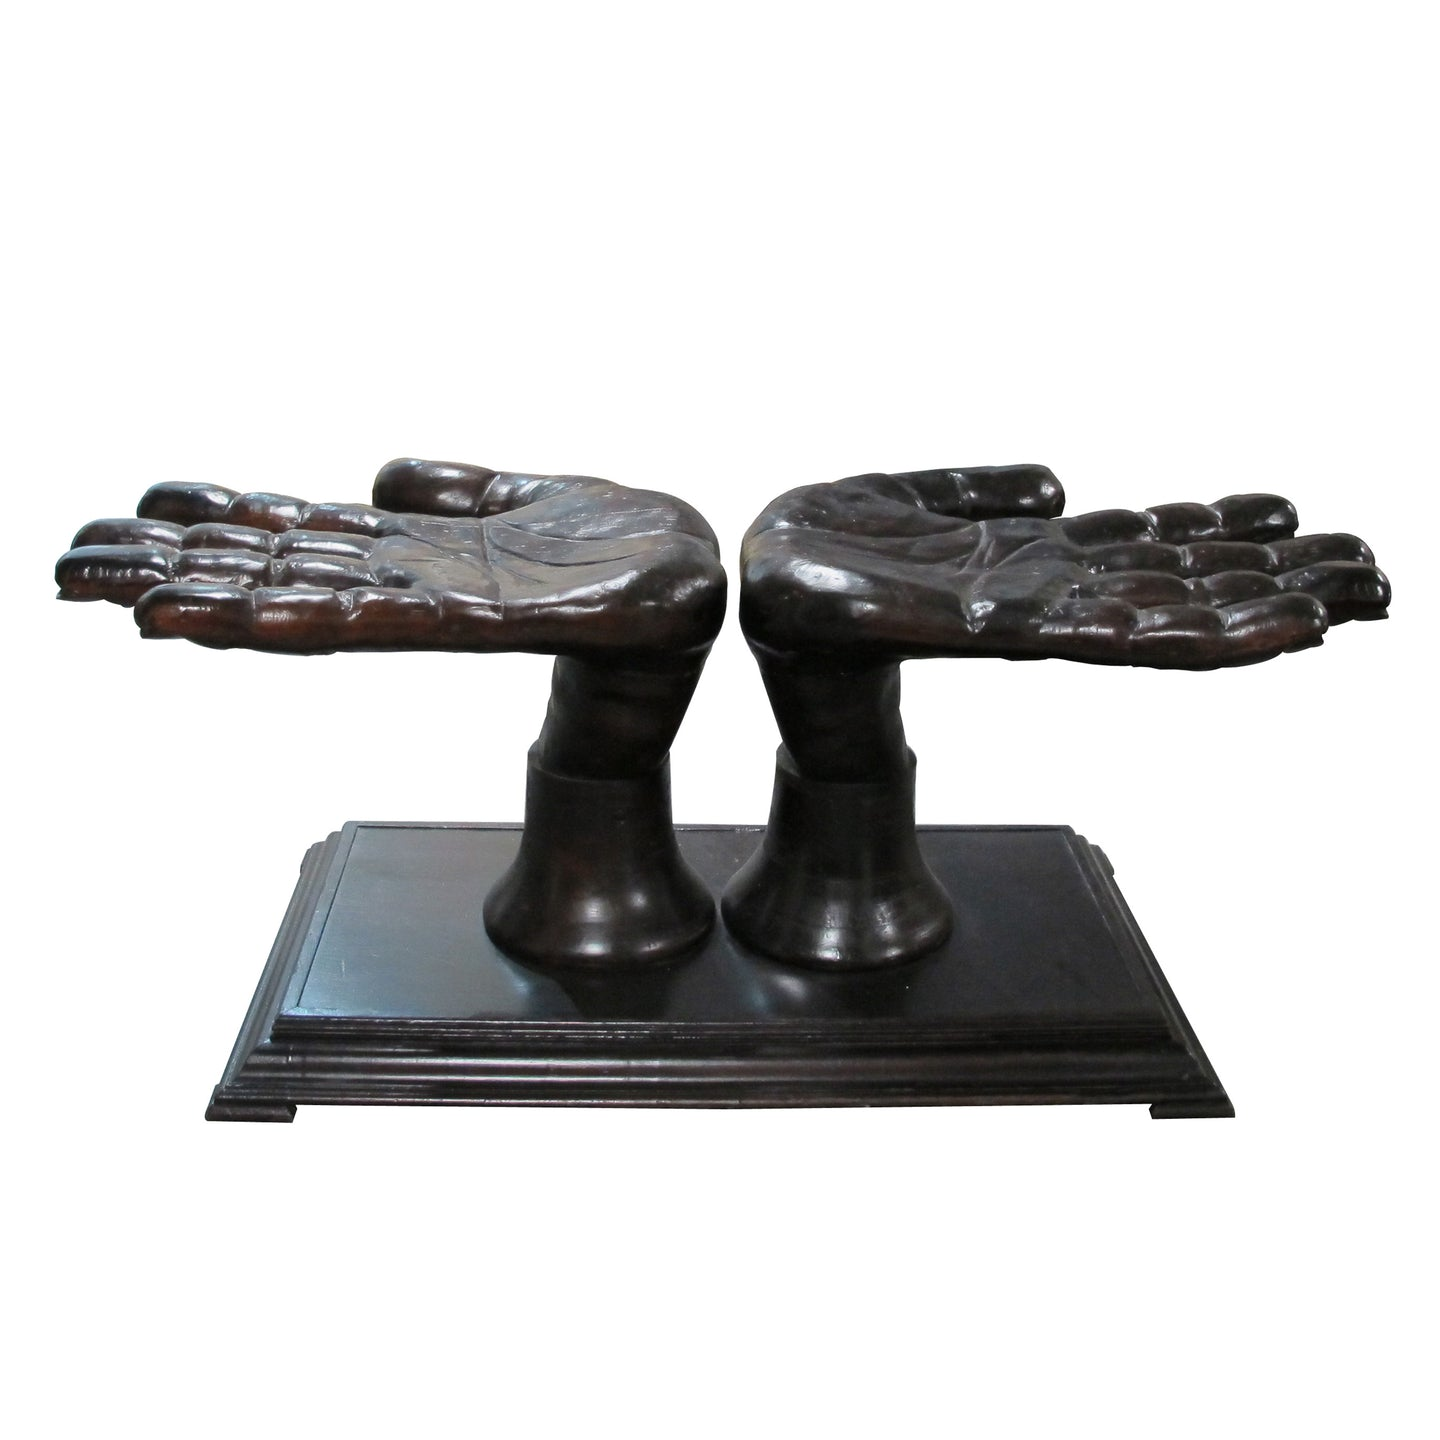 Dining table in the shape of two hands